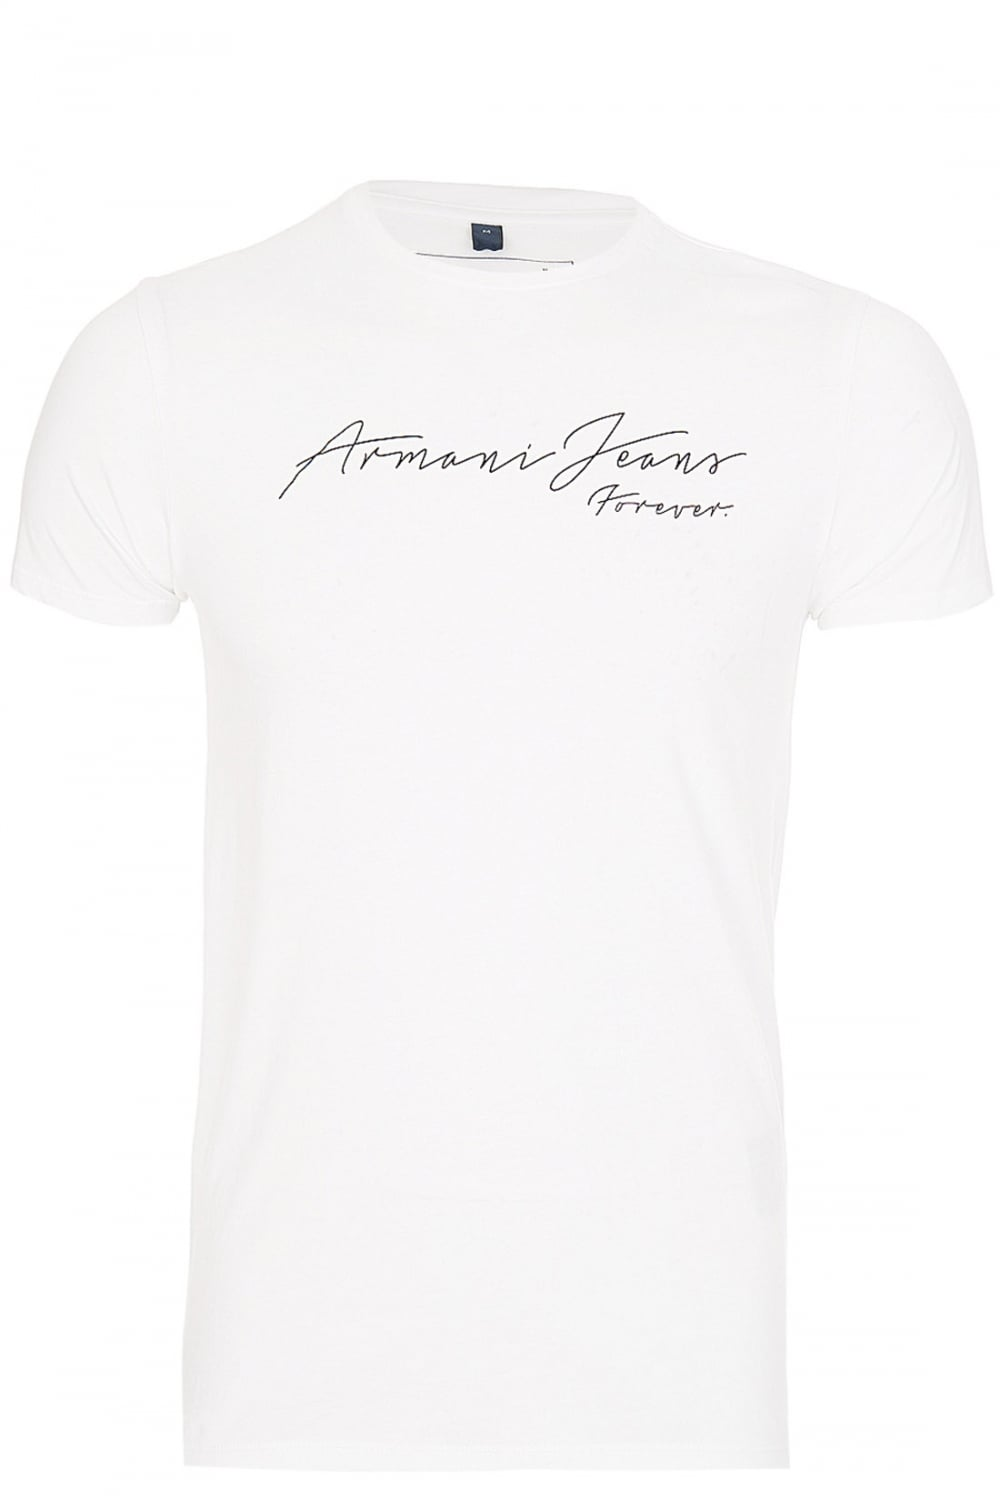 d84dba32 ARMANI Armani Jeans 'Forever' T-Shirt White - Clothing from Circle ...